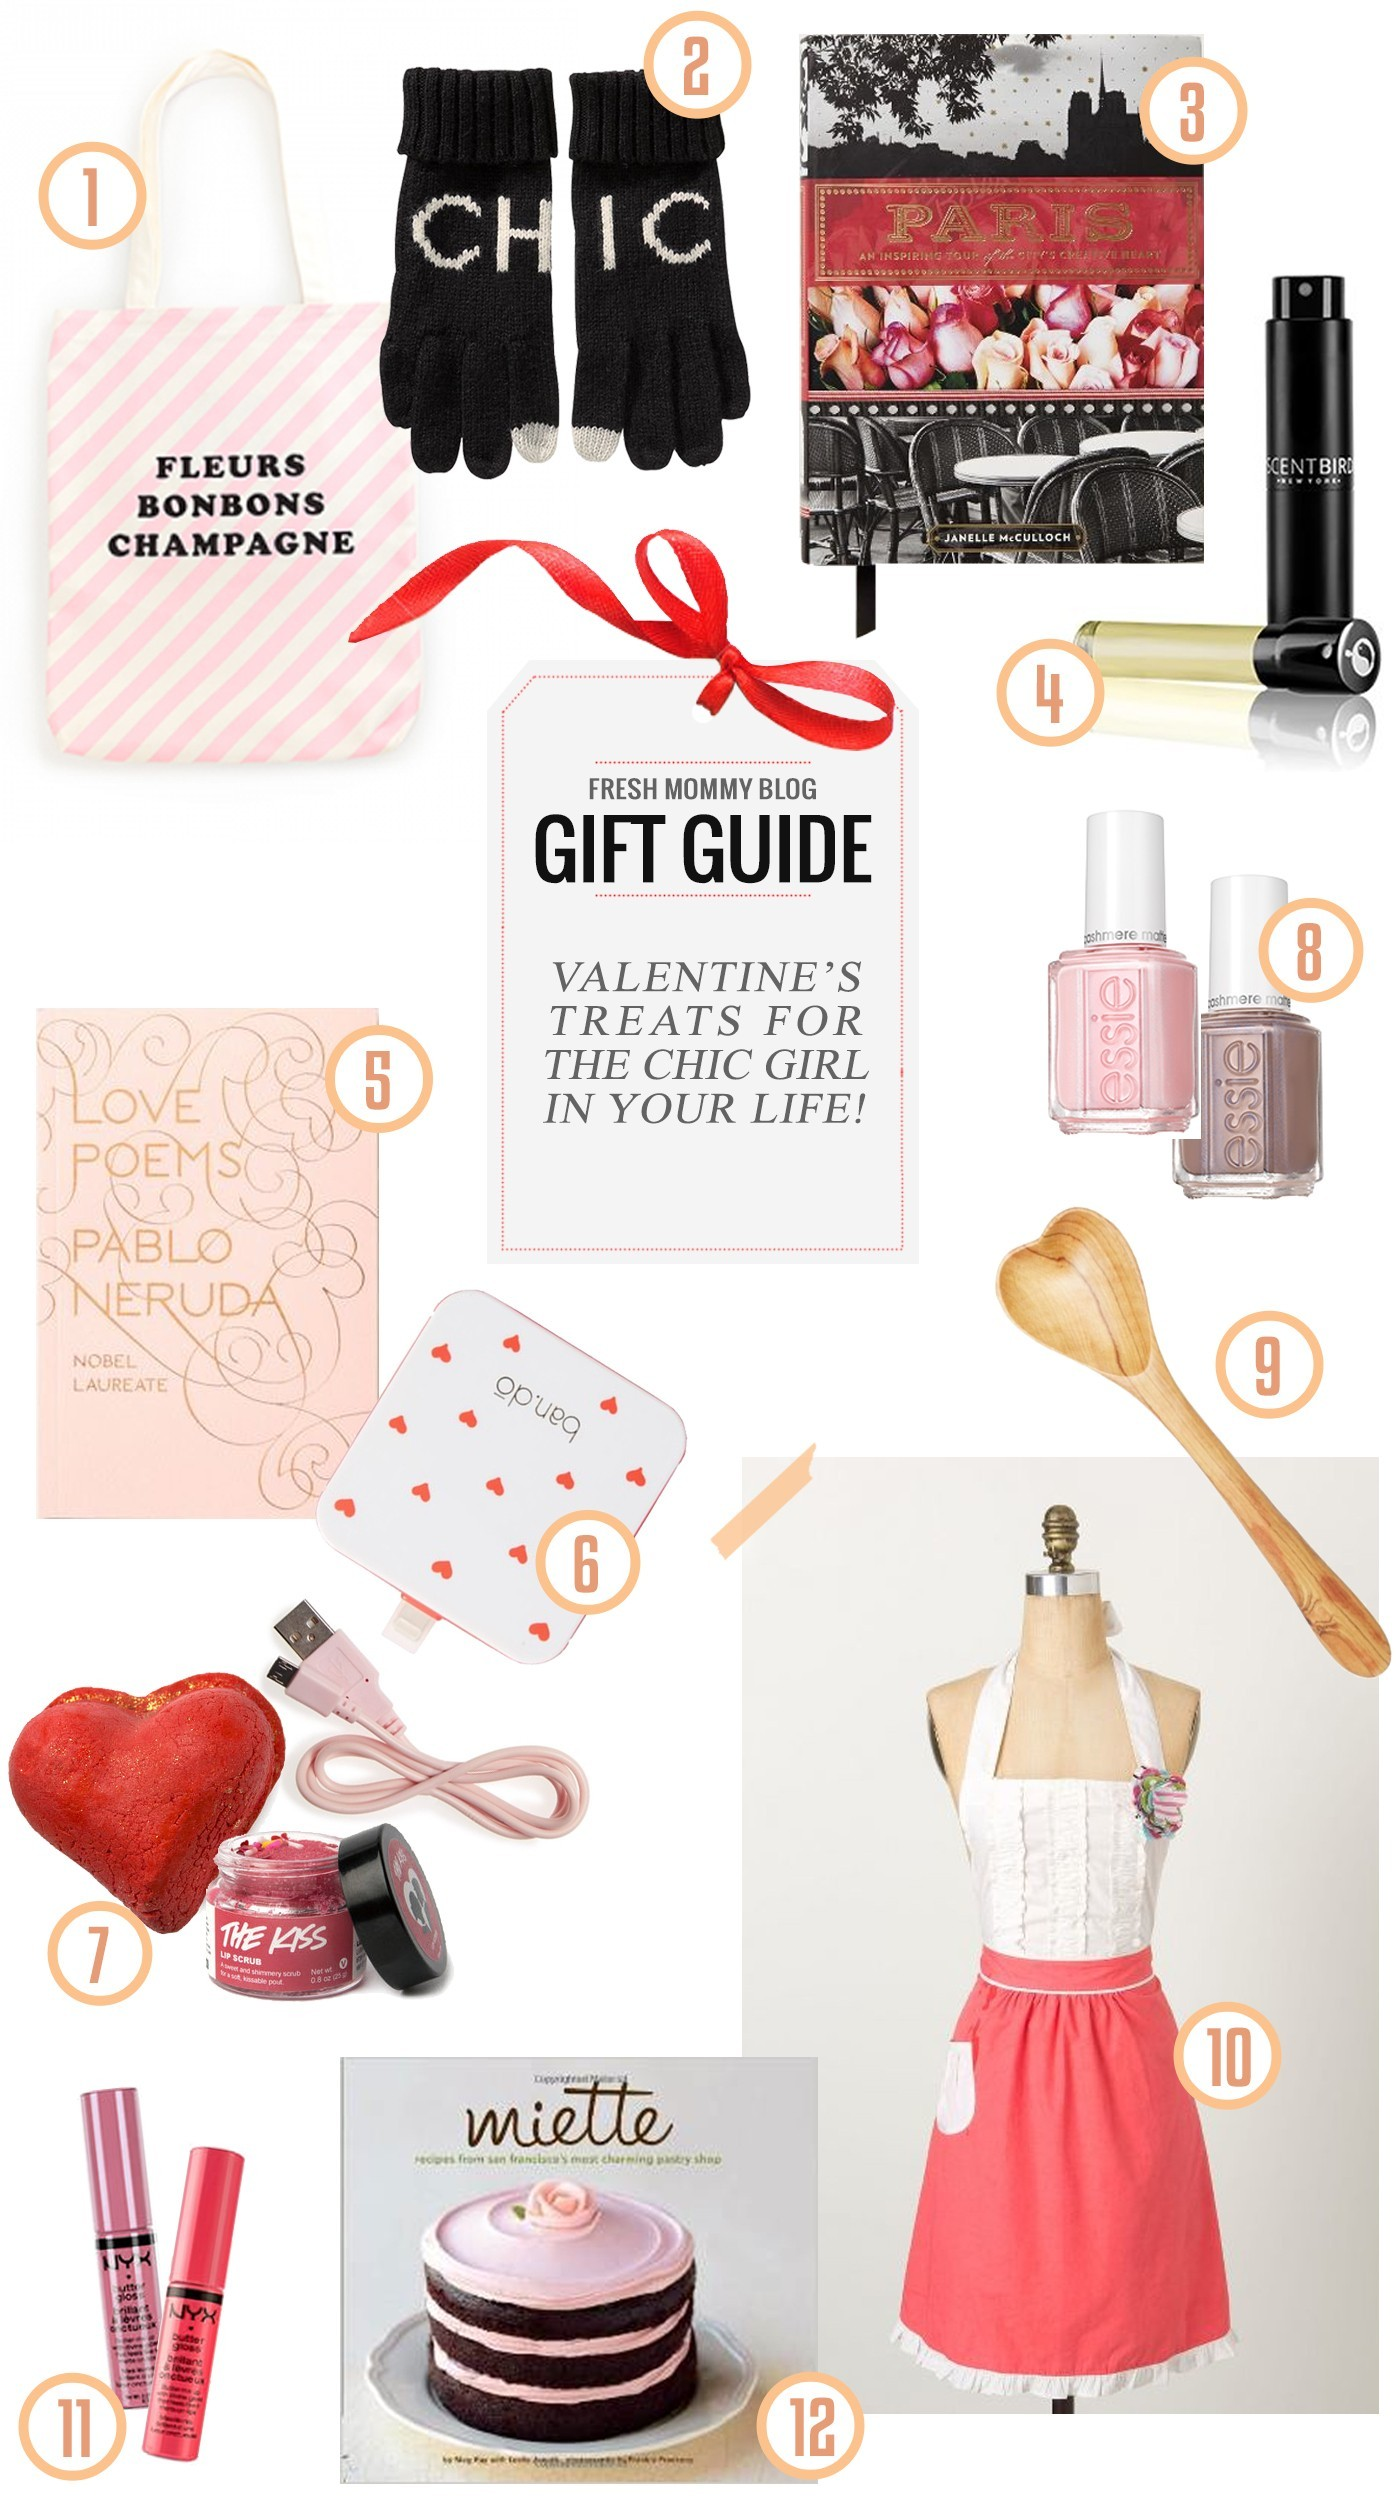 A Valentine's Gift Guide for Her!